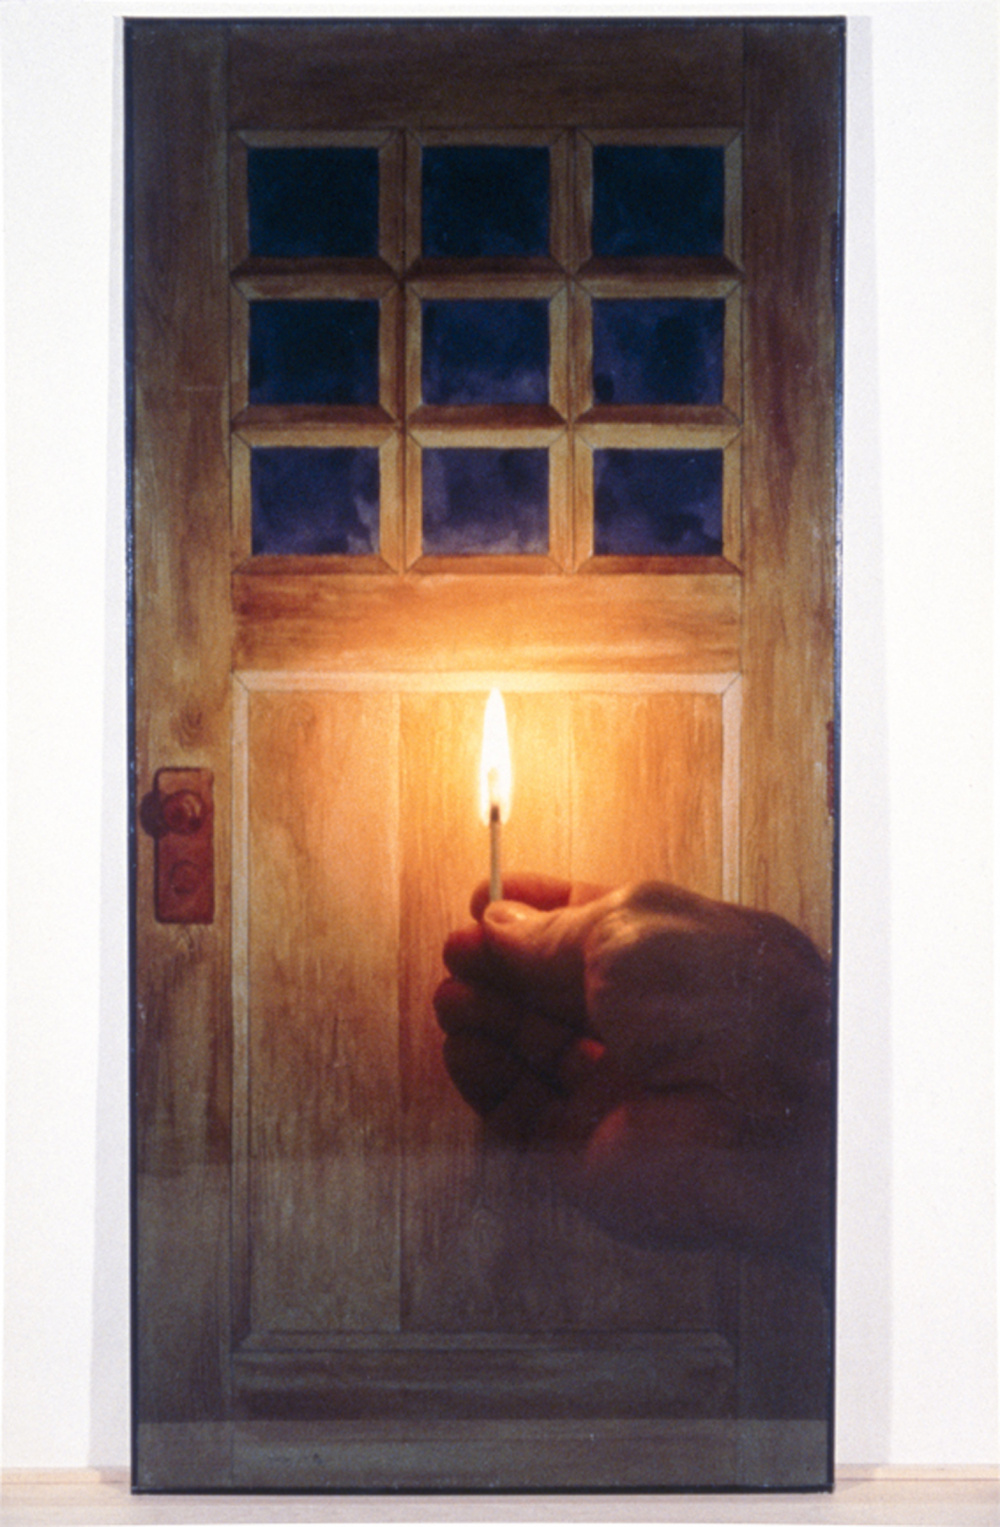 Michael Snow, Door, 1979. Colour photograph, 90.2 x 46.9 x 5.9